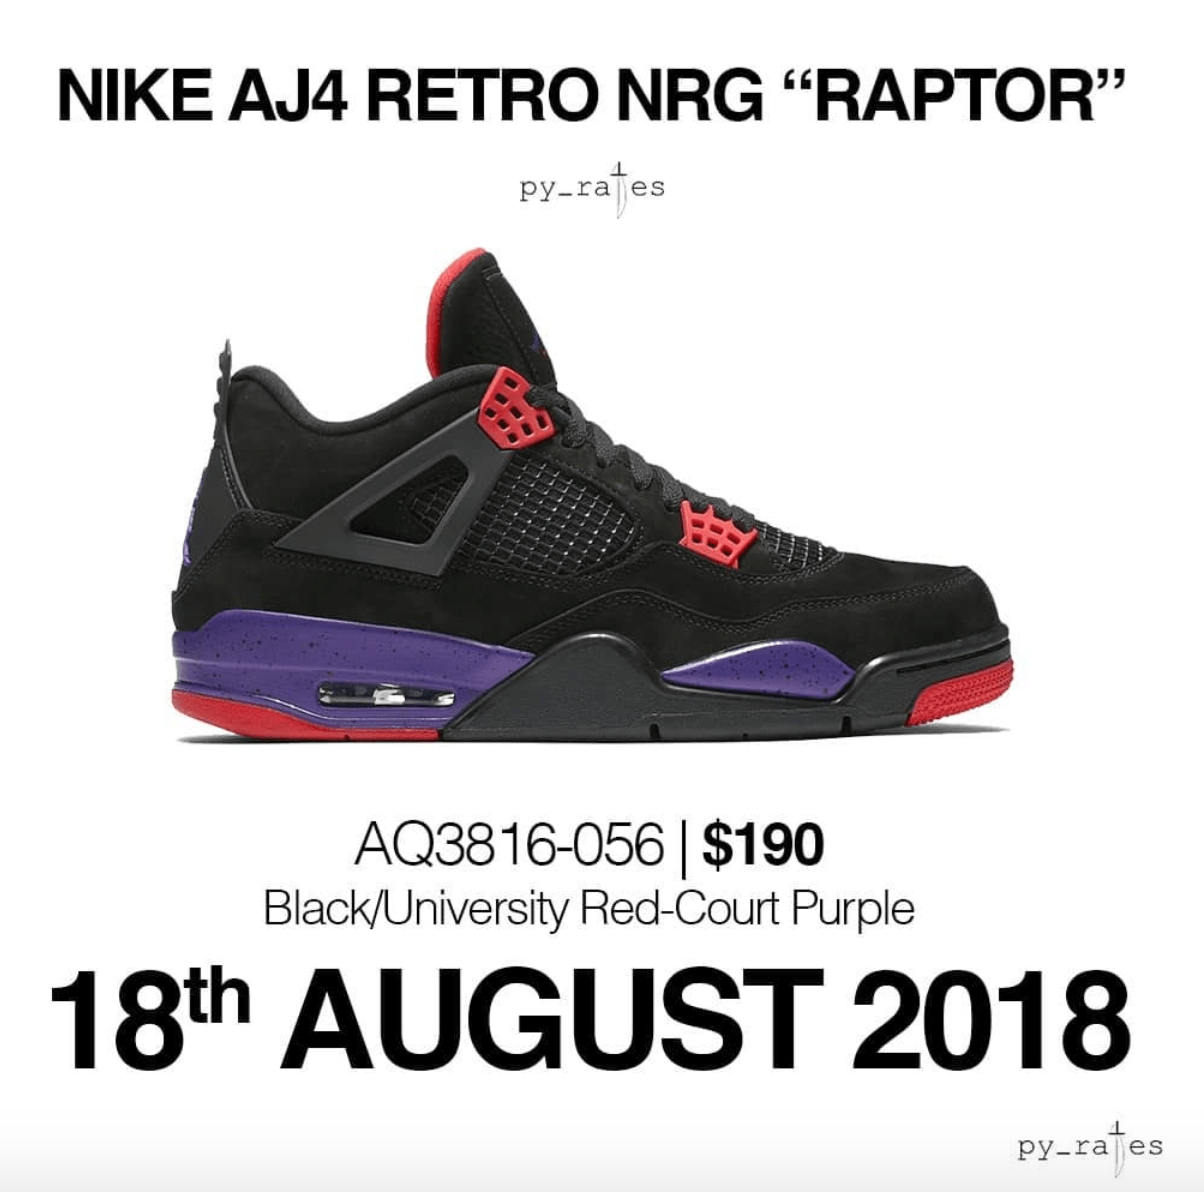 b52786669f1228 Air Jordan 4 Retro NRG Raptor release date - WearTesters